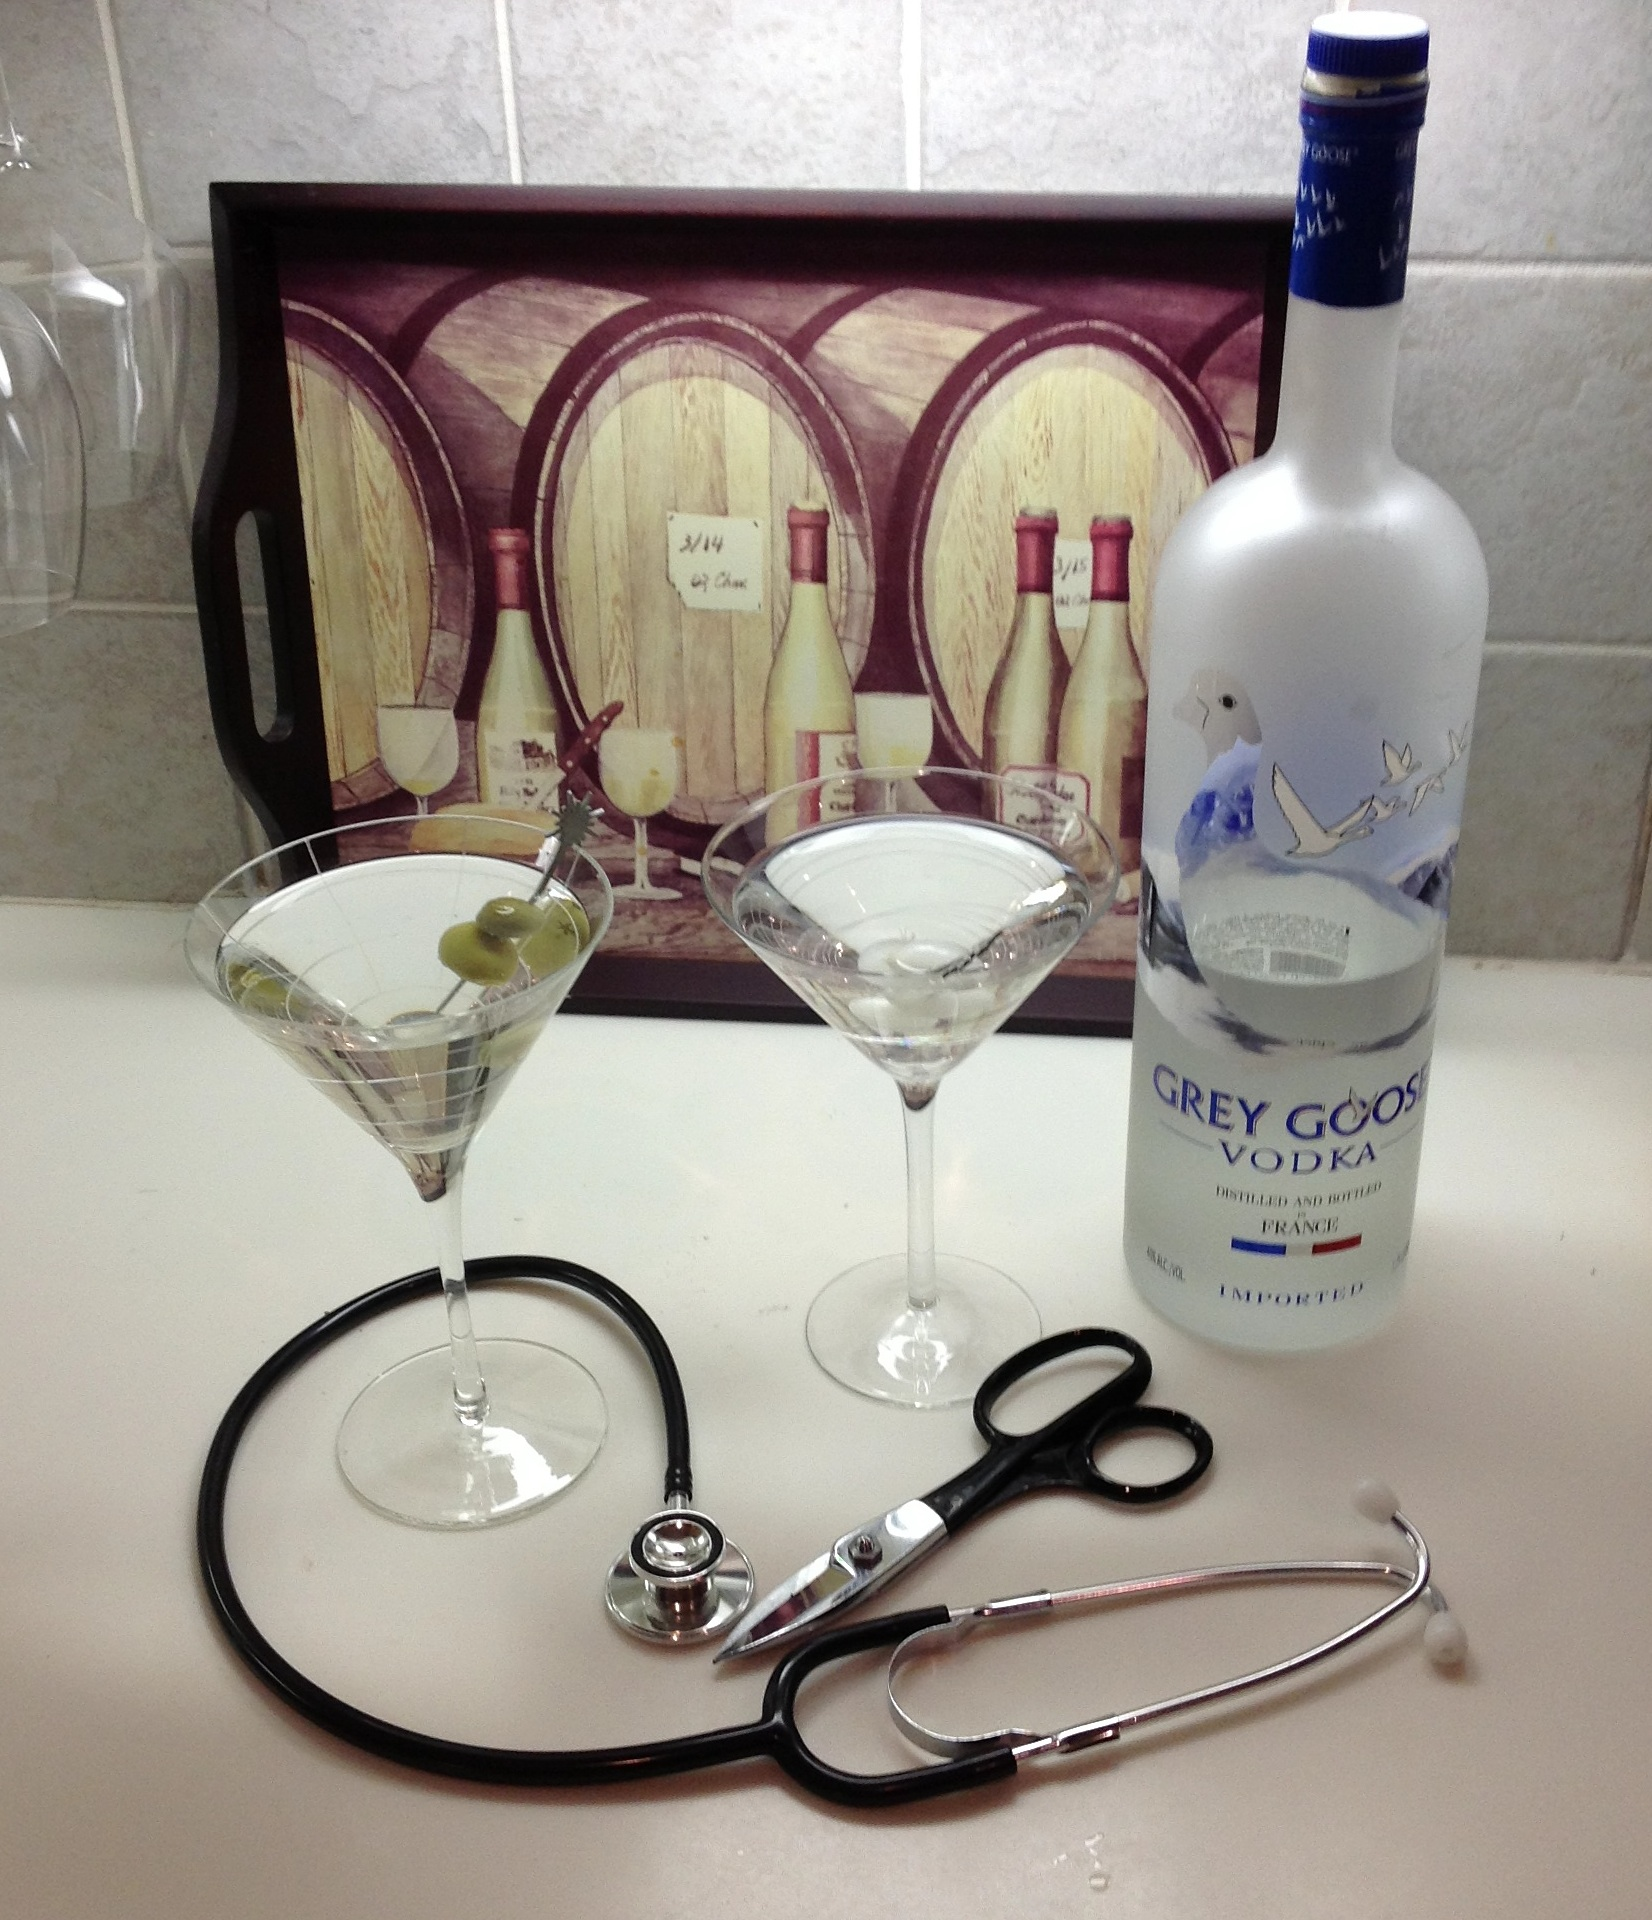 After performing magic at the hospital, it's time for a little R&R...well, actually, M&M (Magic and Martinis).